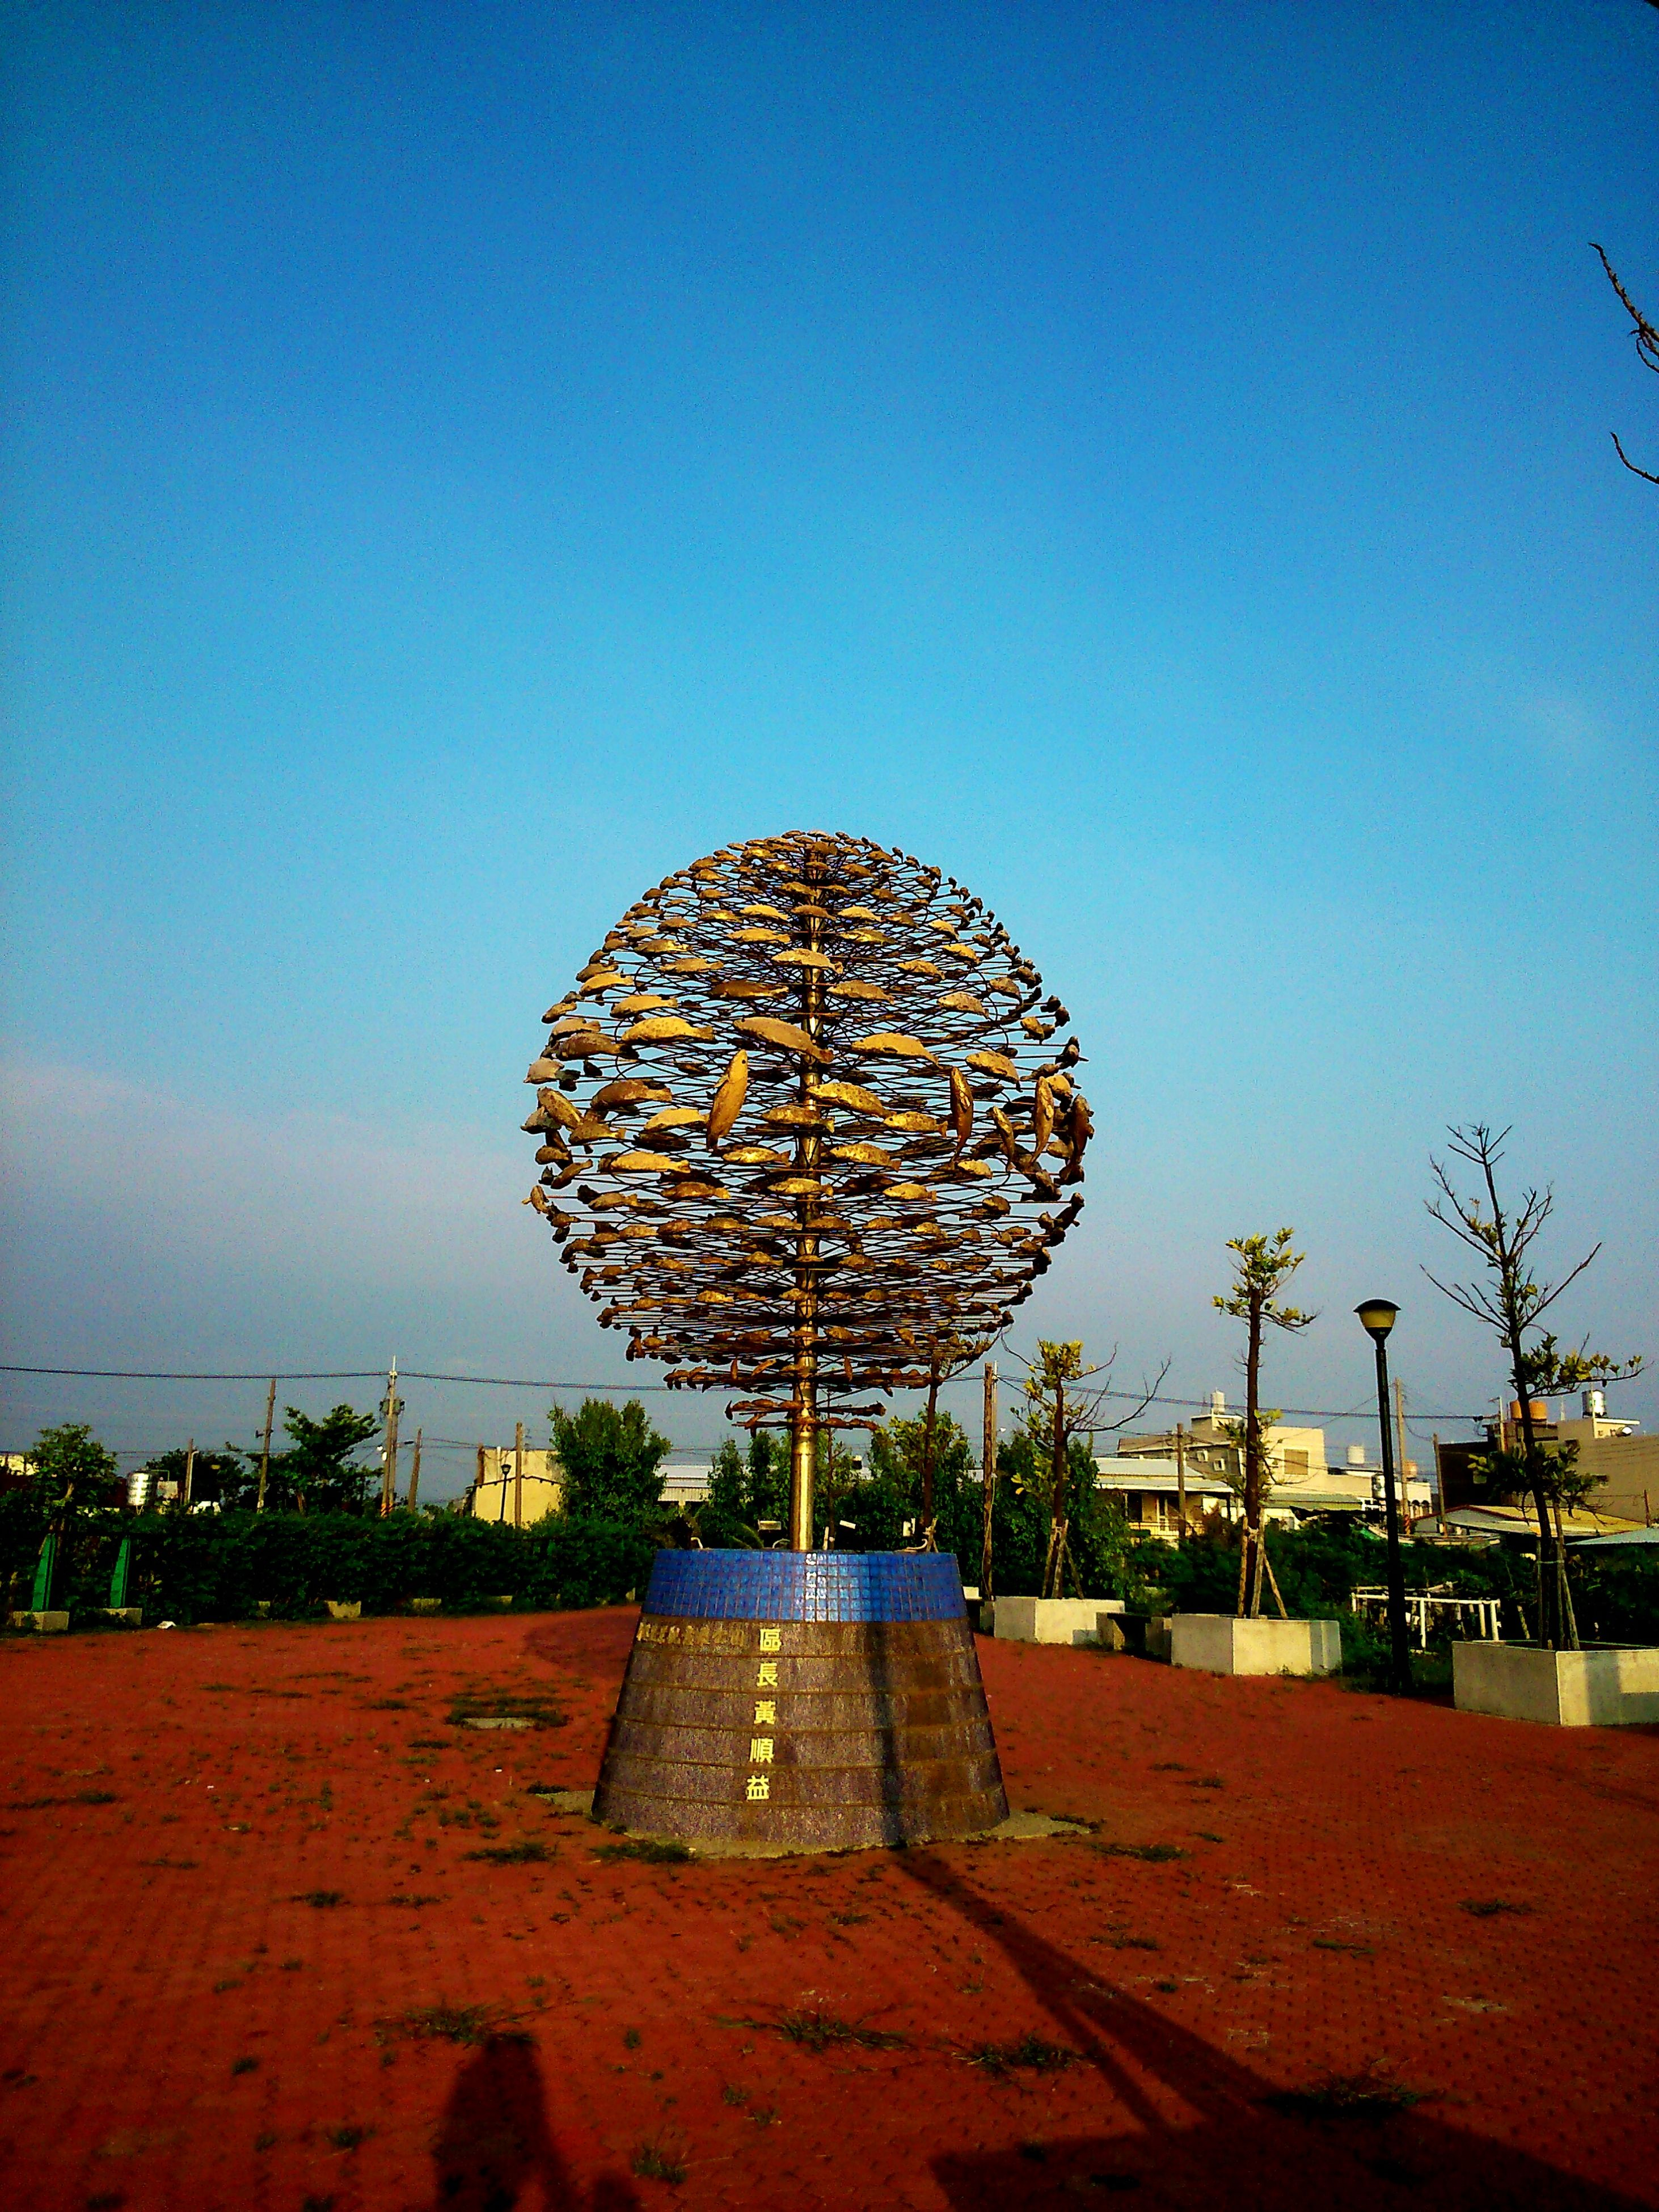 clear sky, blue, copy space, tree, lighting equipment, sky, outdoors, circle, built structure, no people, sunlight, tranquility, street light, nature, illuminated, day, ferris wheel, low angle view, arts culture and entertainment, tranquil scene